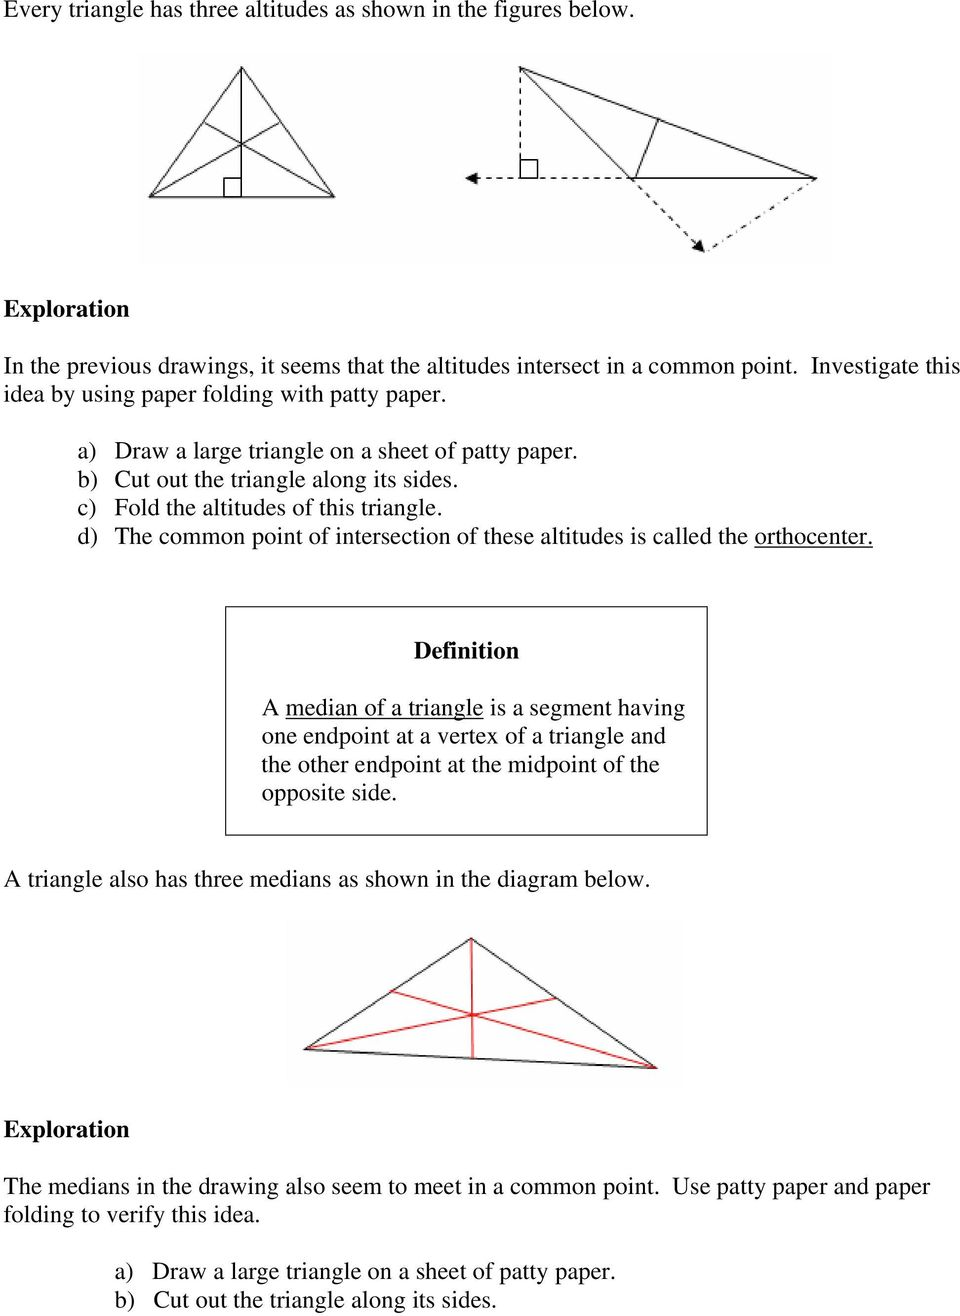 d) The common point of intersection of these altitudes is called the orthocenter.